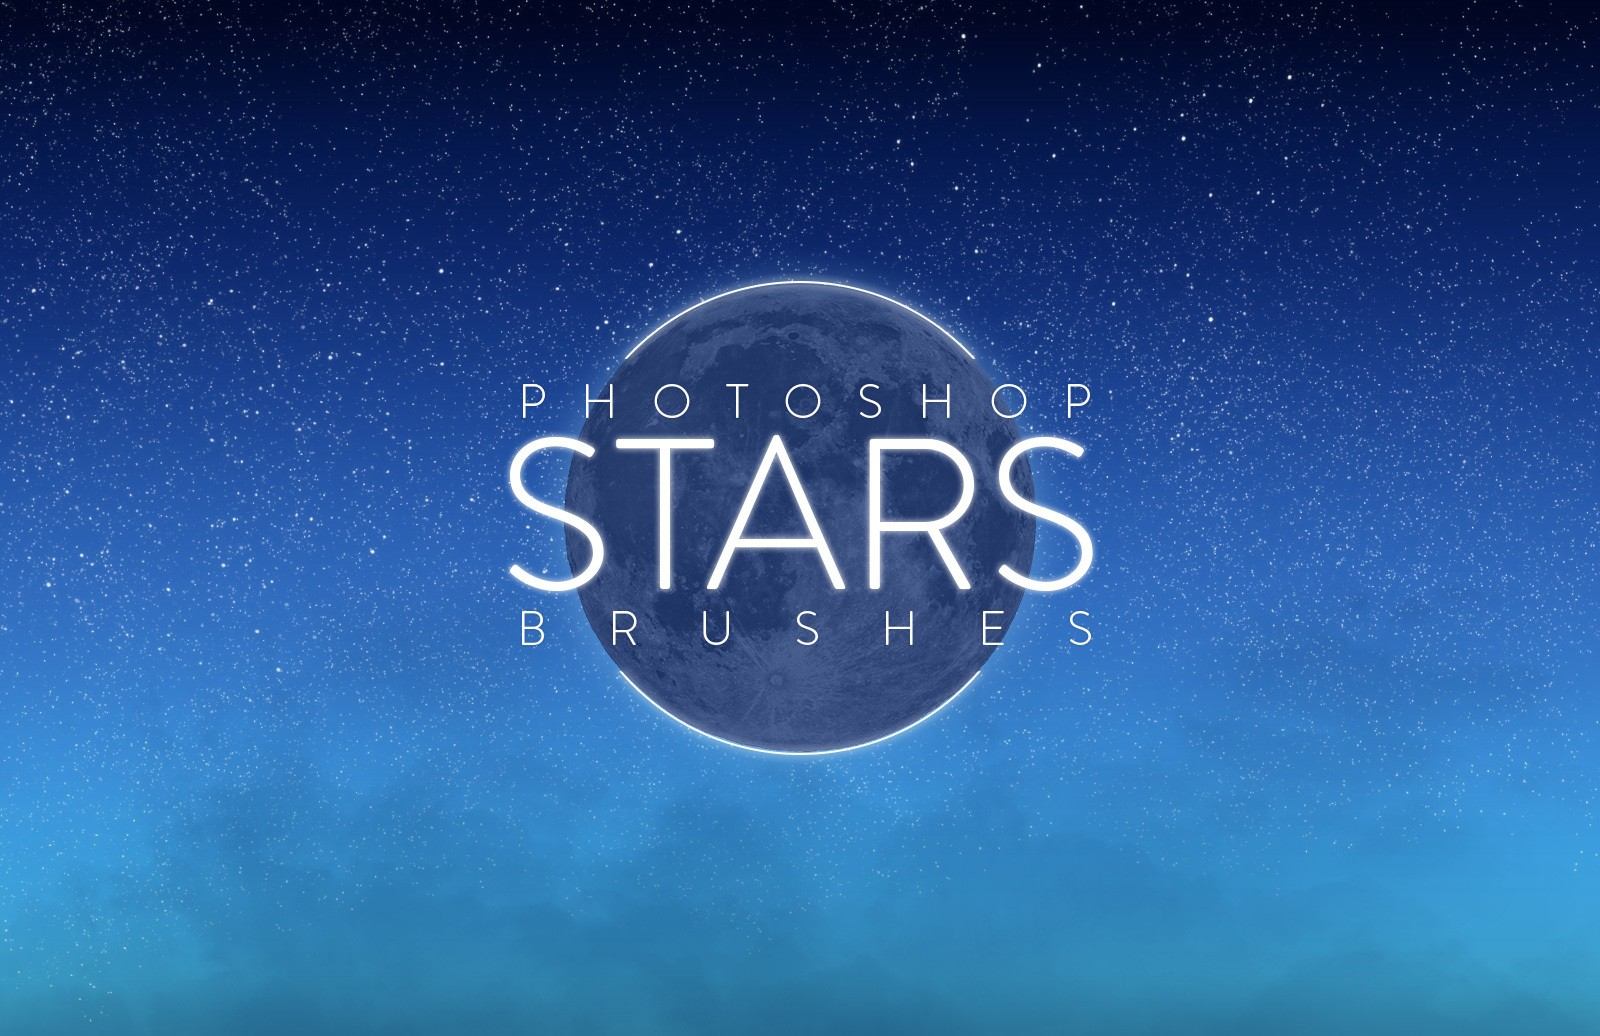 Photoshop Stars Brushes Preview 1